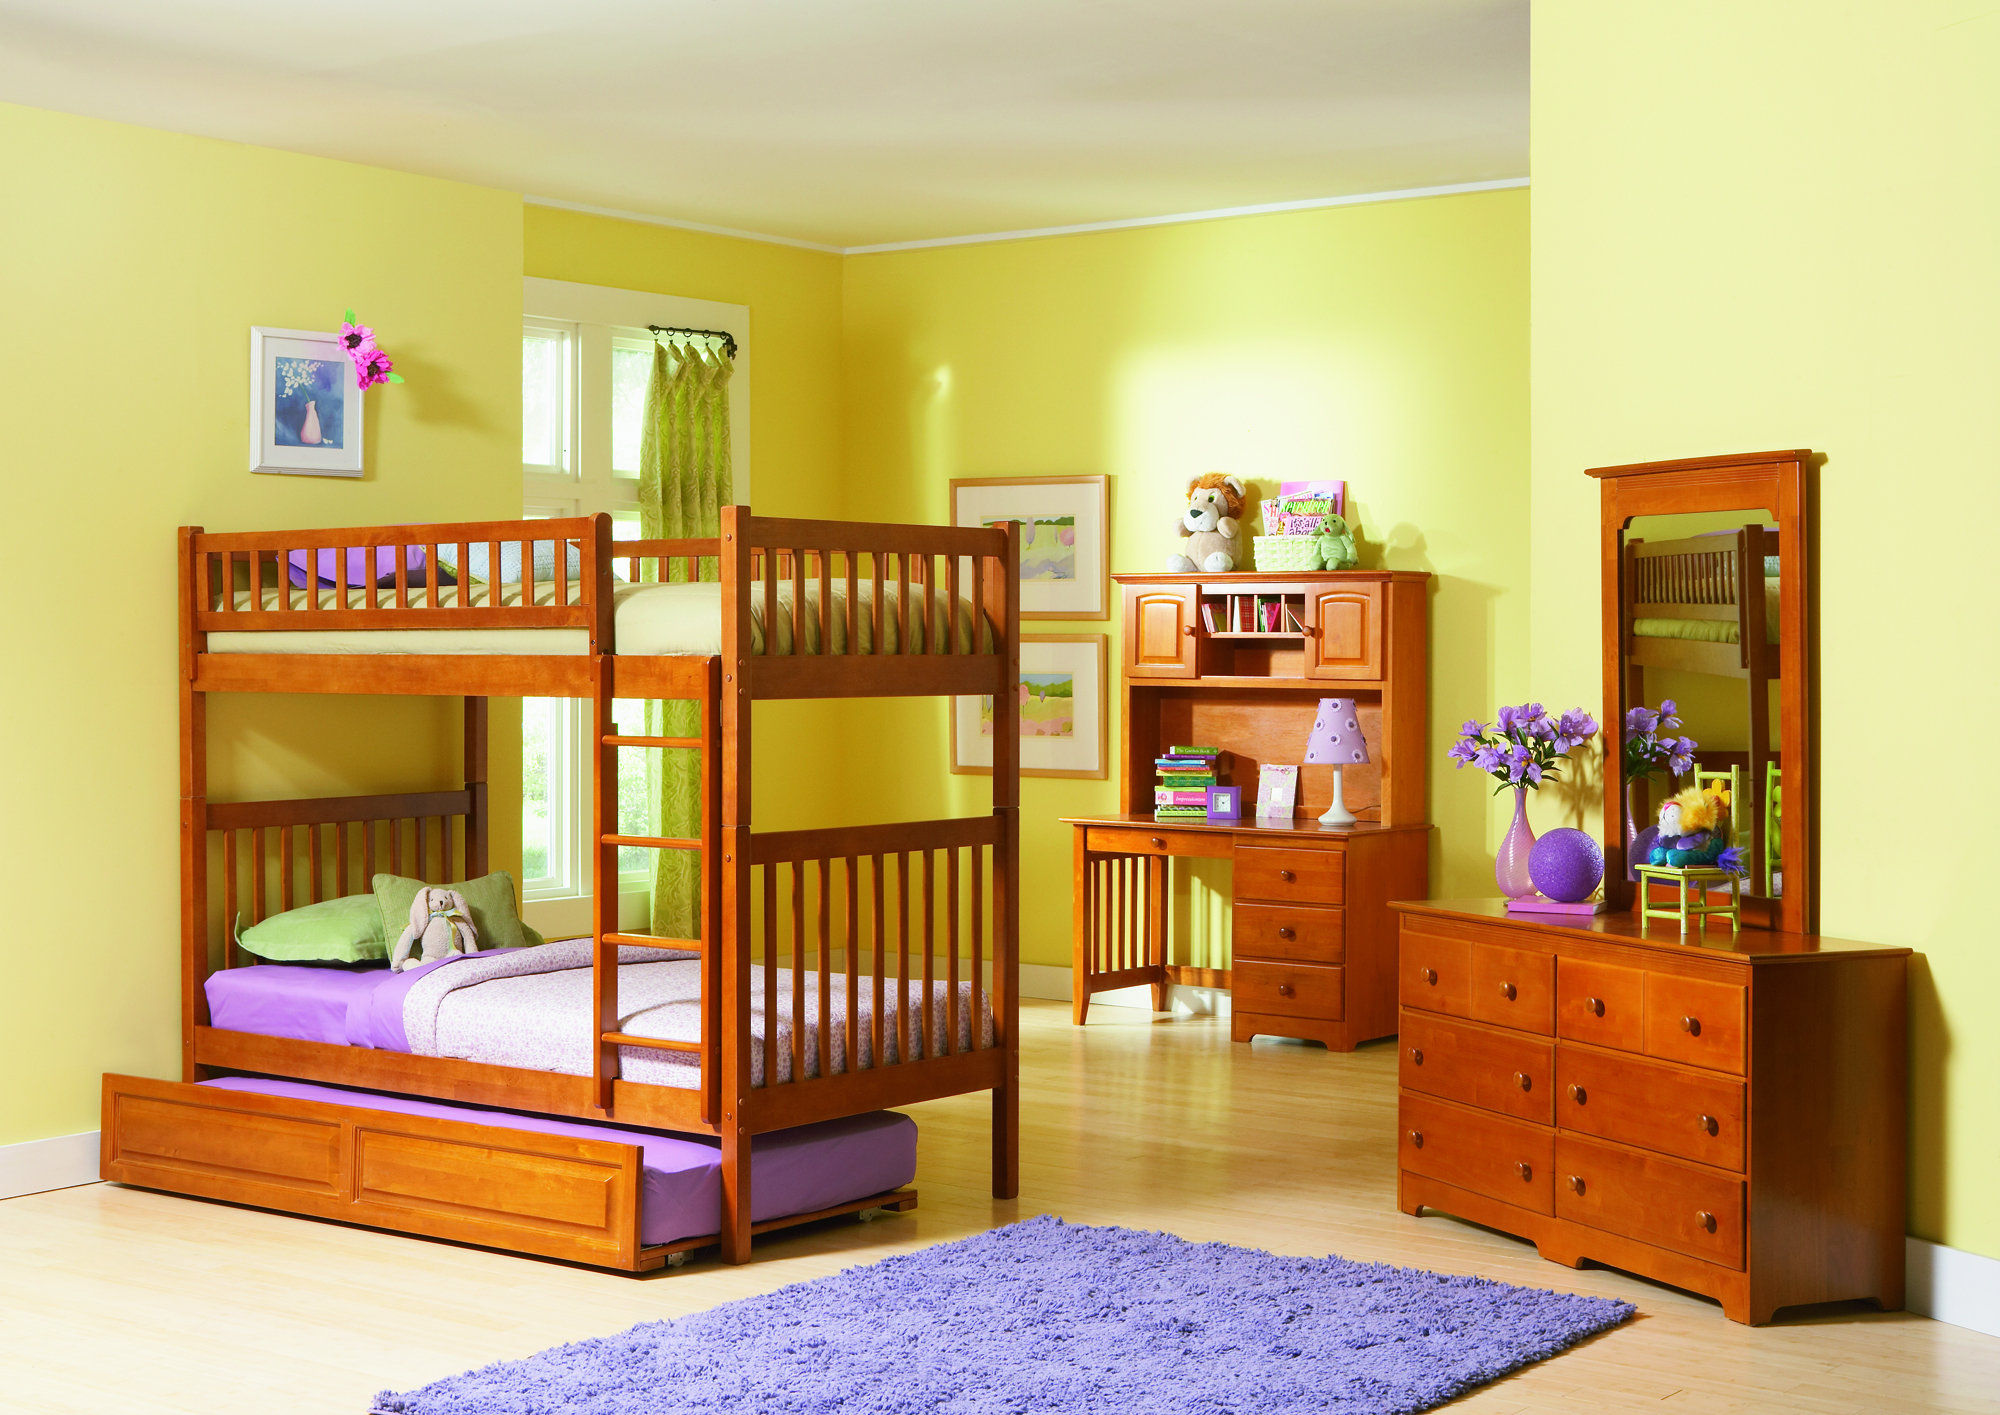 Children Bedroom Furniture Kids Bedroom Furniture To Make Your Home More  Elegant Khabars.net With